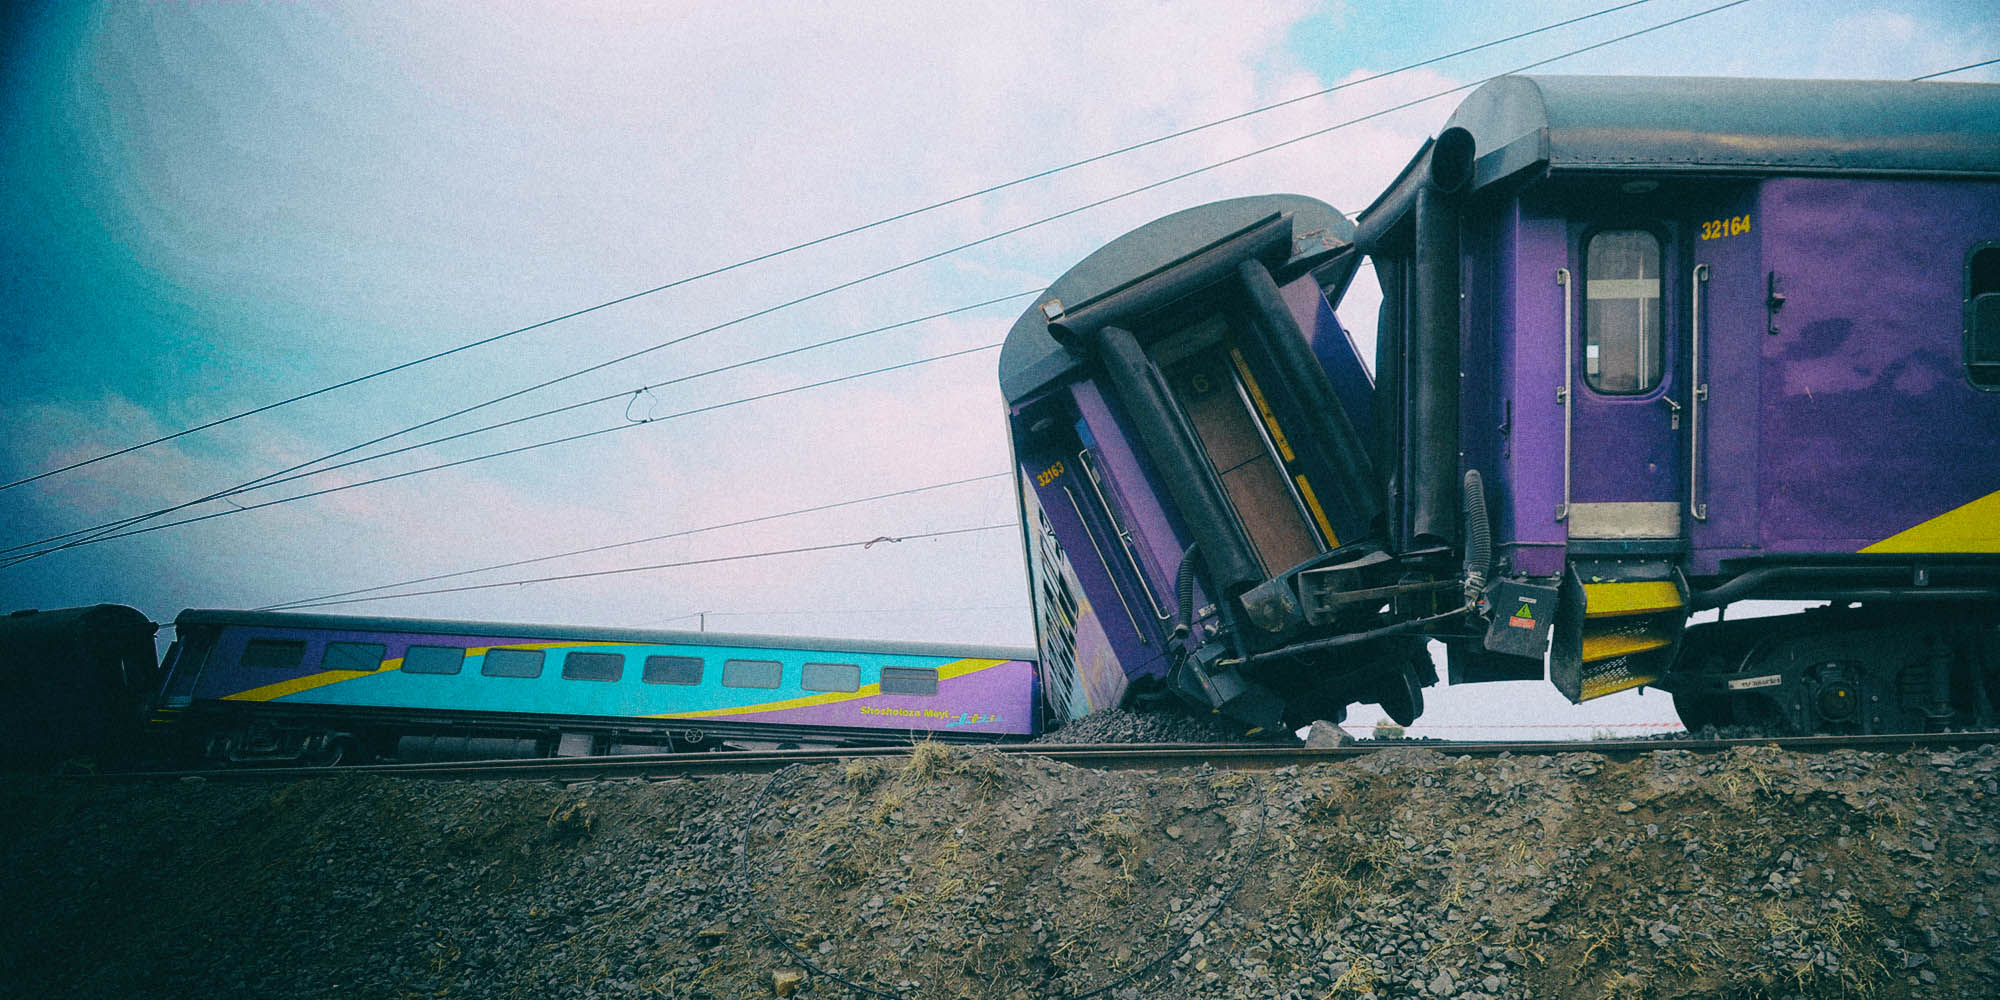 TRAIN SAFETY: Railway Safety Regulator: What are you doing as trains get more dangerous, MPs ask